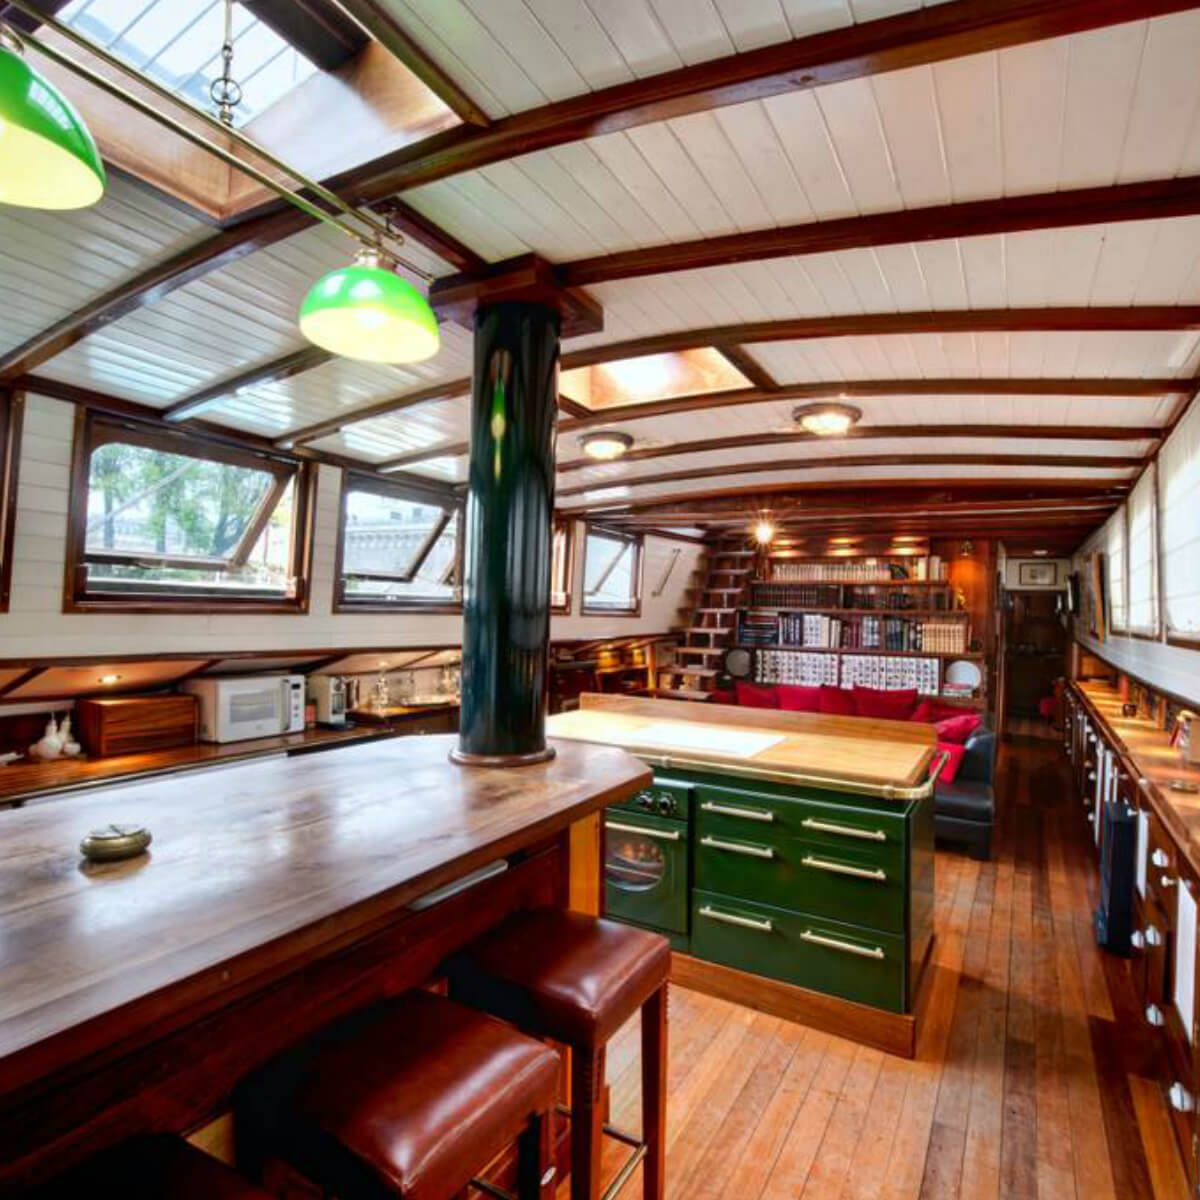 Airbnb Peniche Paris These 51 Airbnb Houseboats Are Like Living In A Floating Tiny